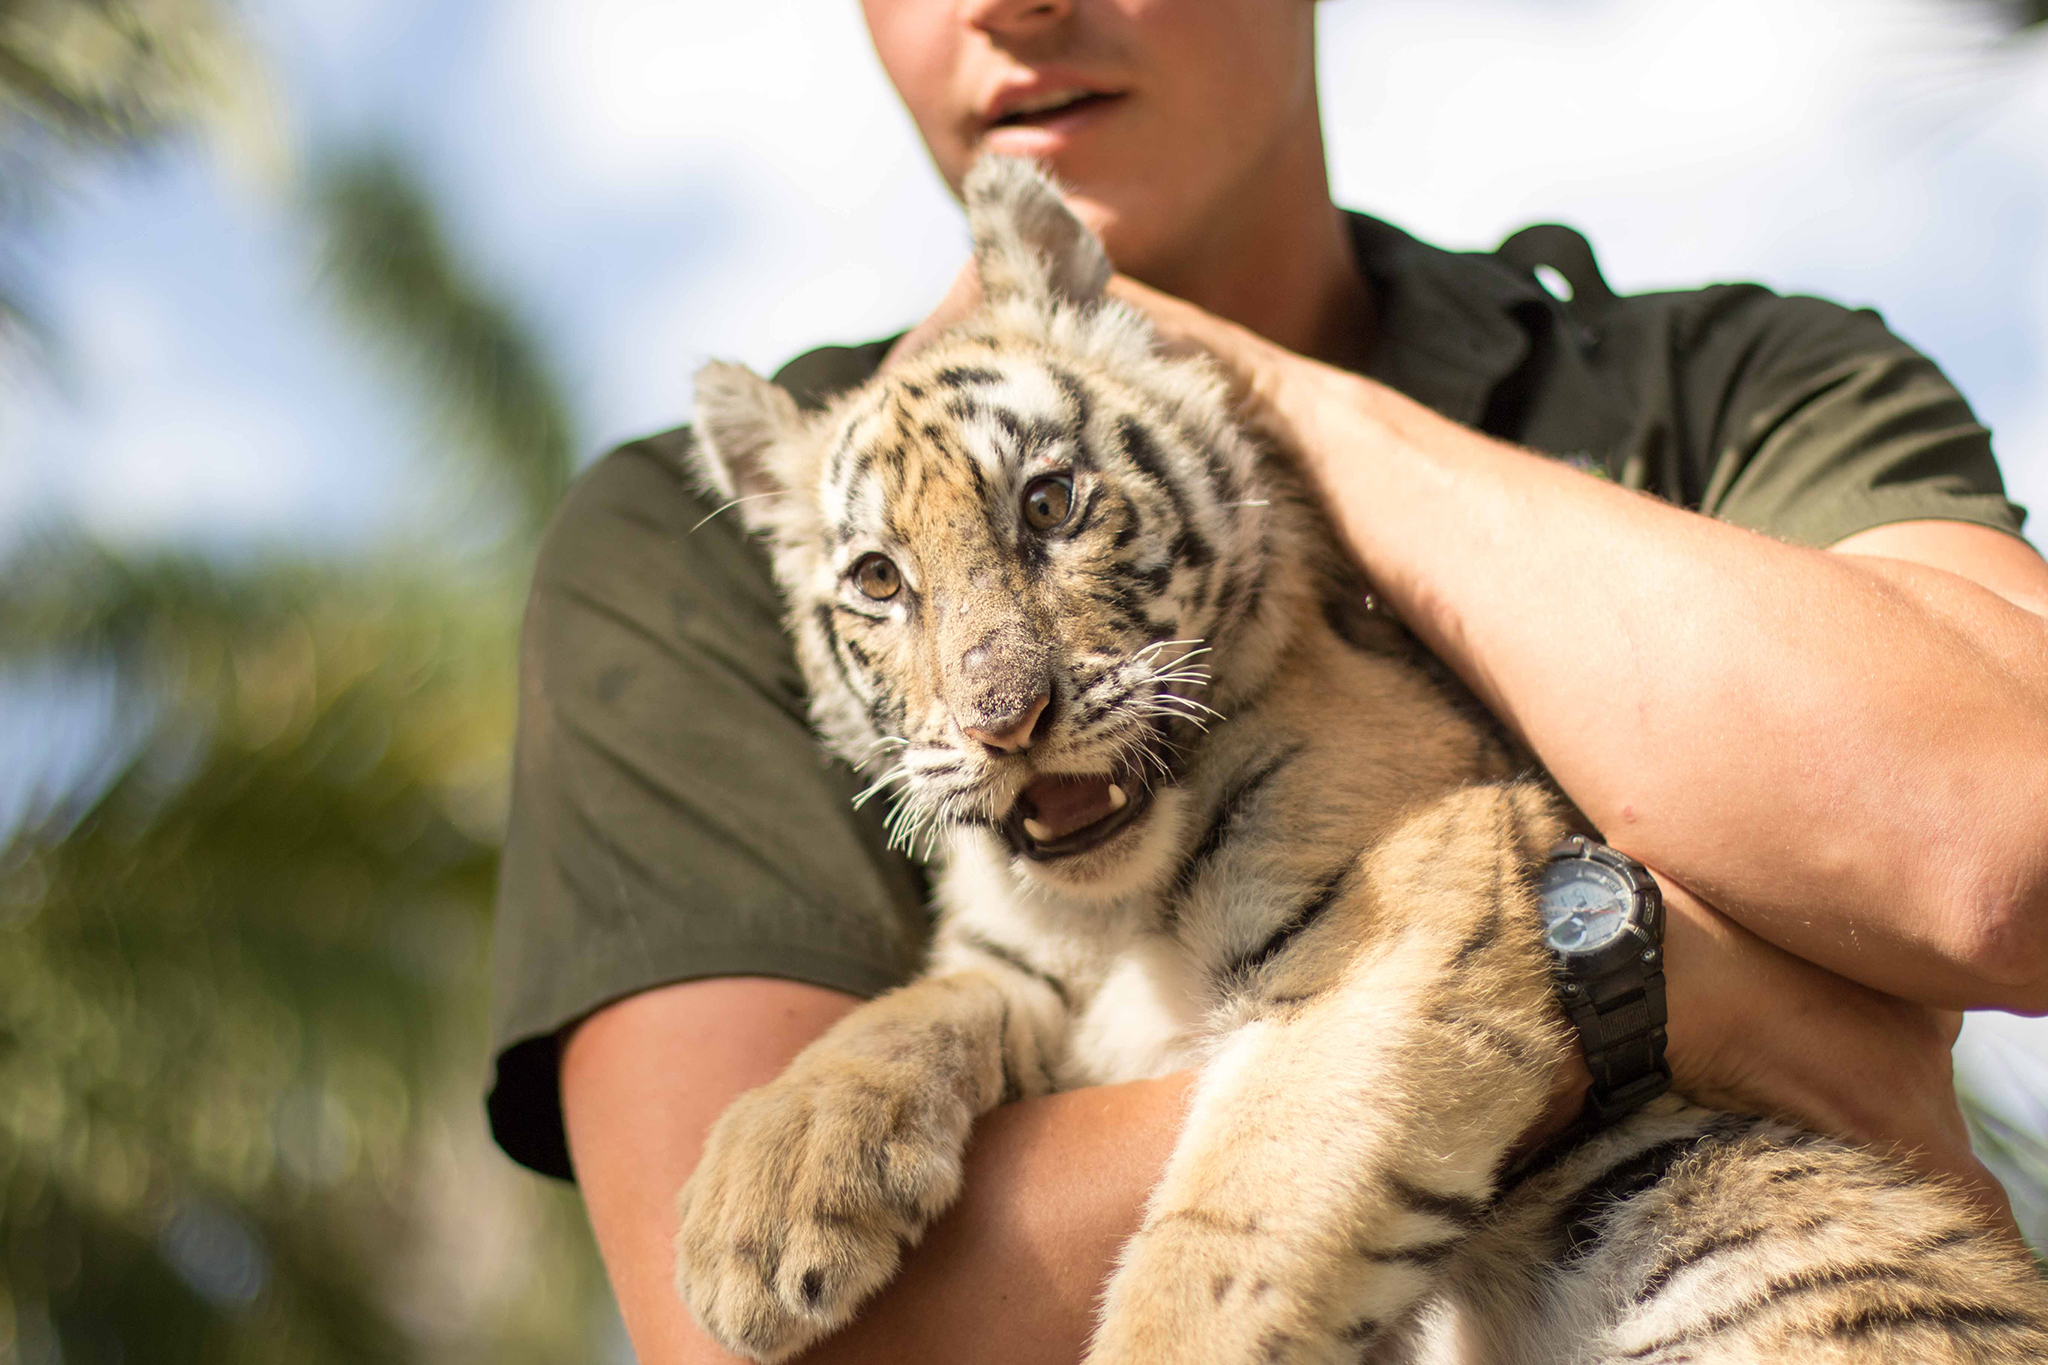 Have an animal encounter at Zoological Wildlife Foundation